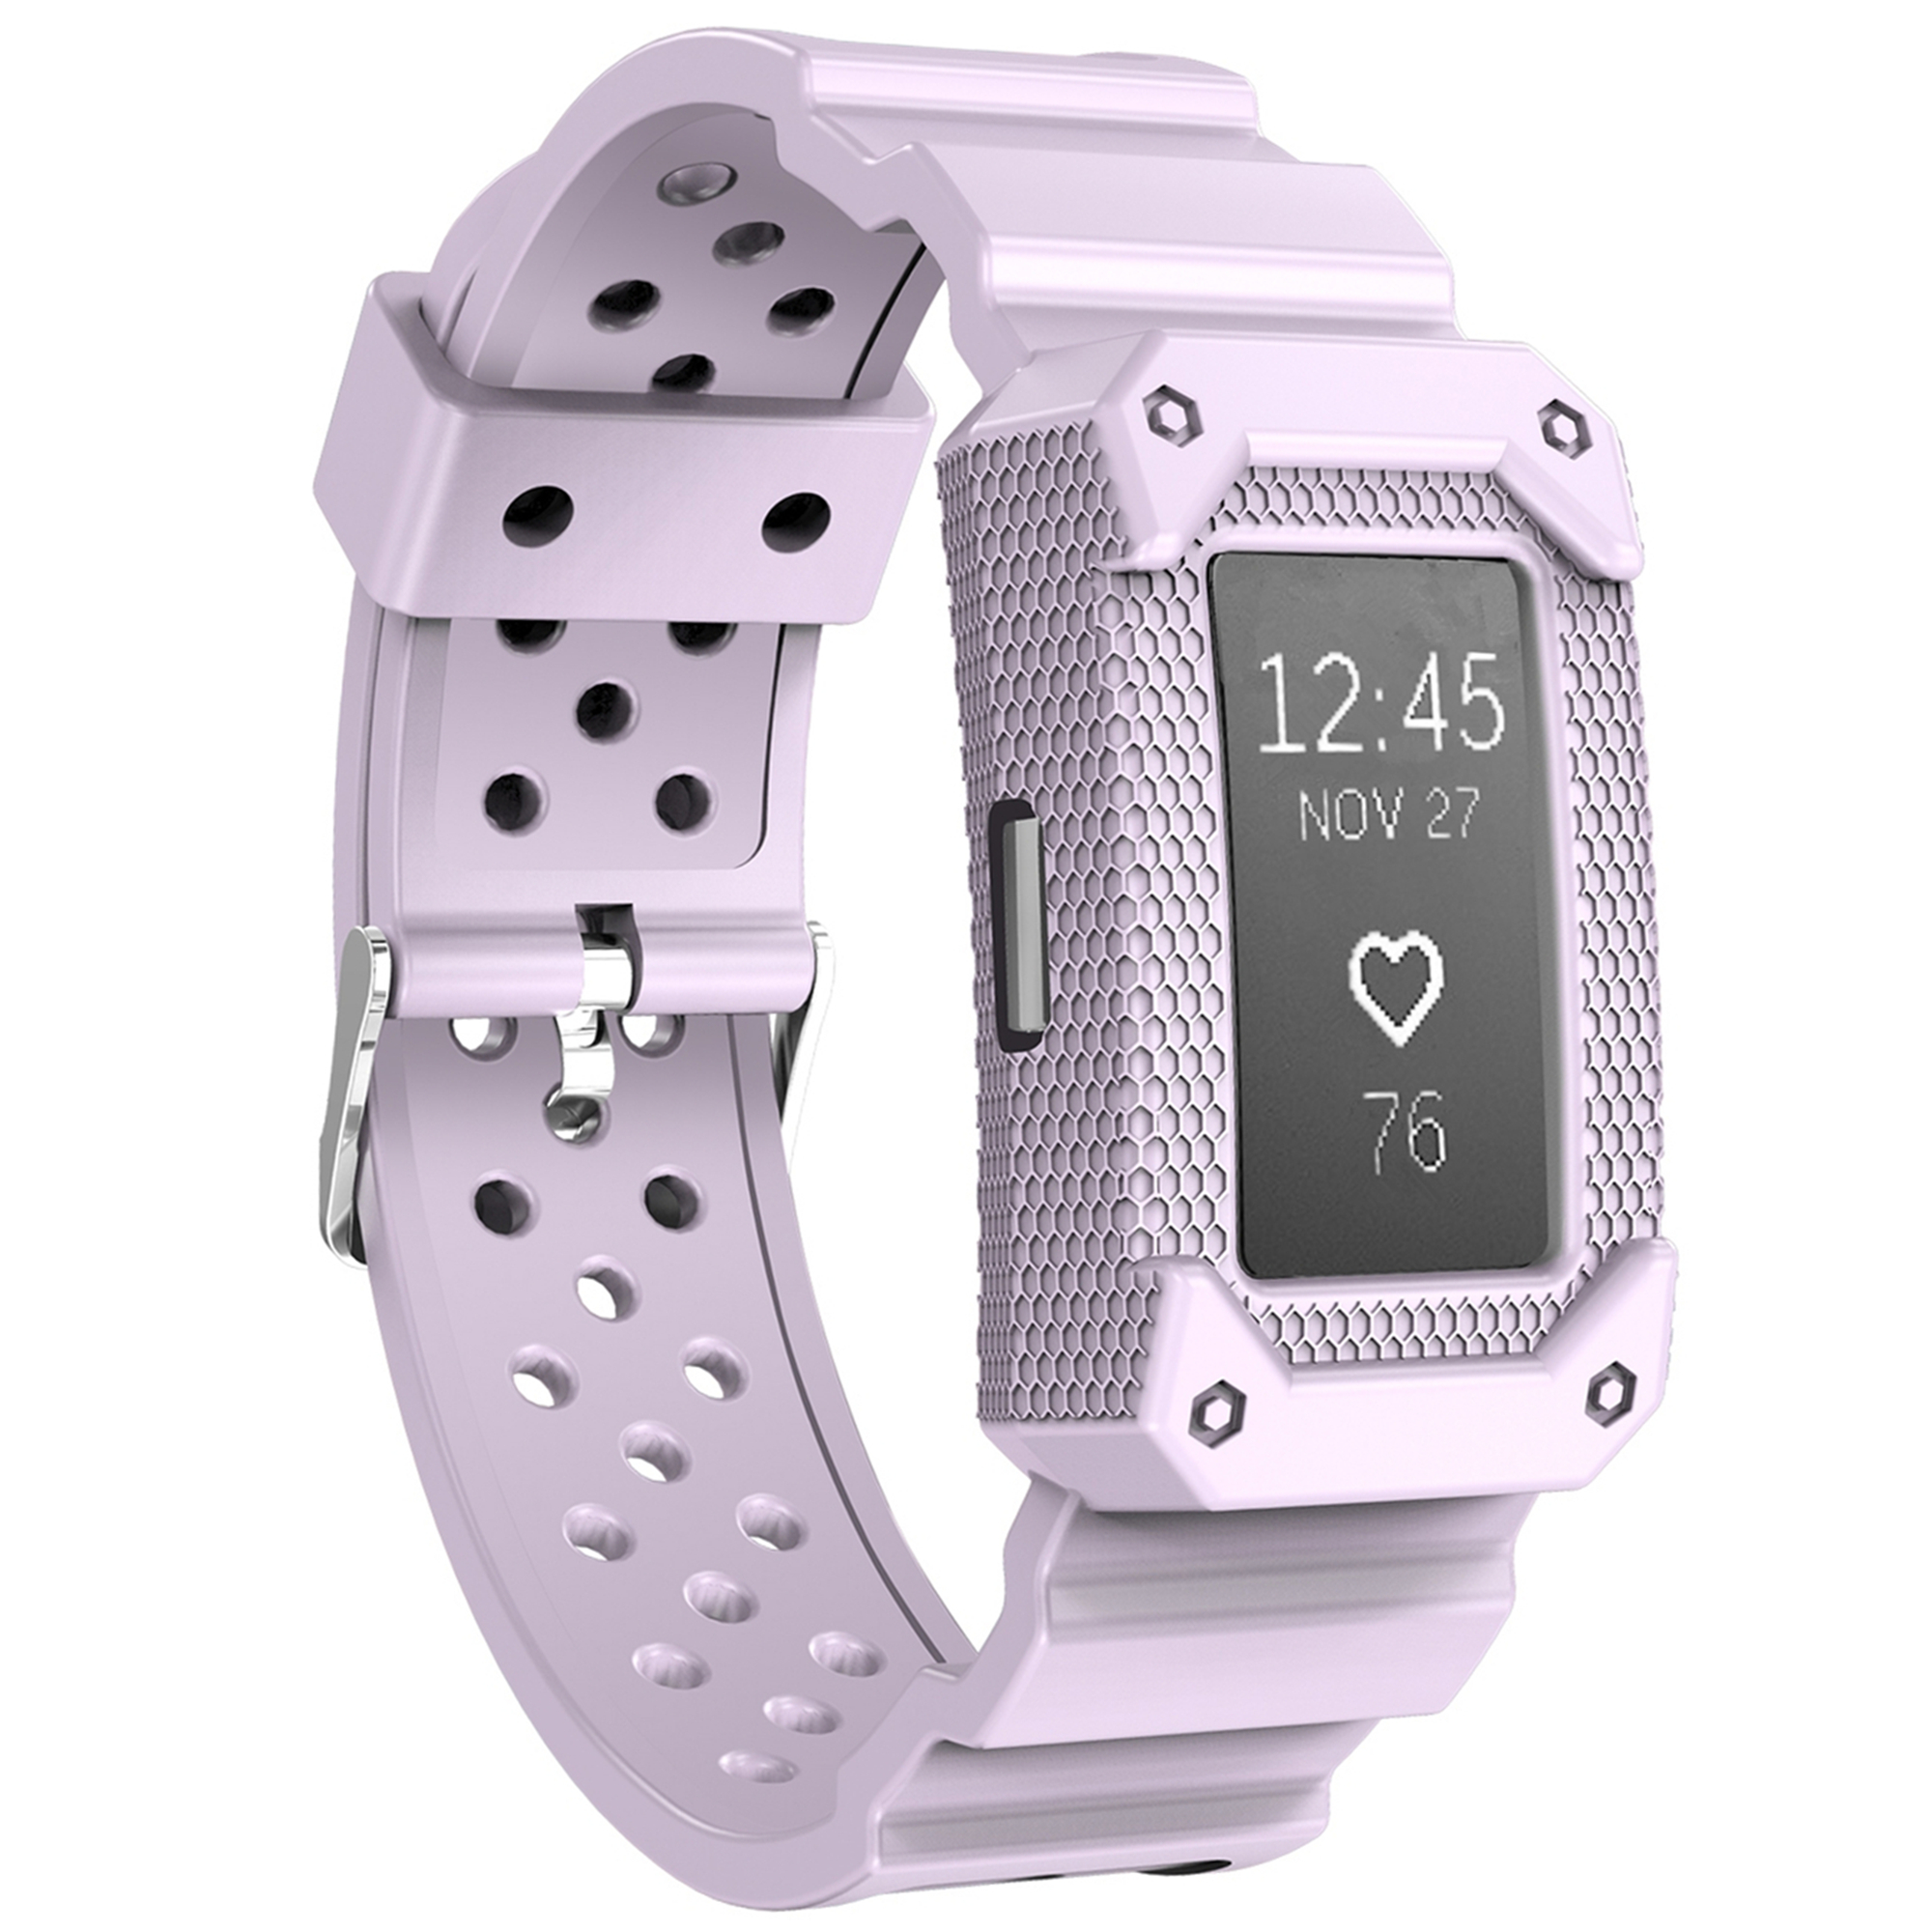 Moretek Replacement Wrist Band for Fitbit Charge 2 (Lavender)